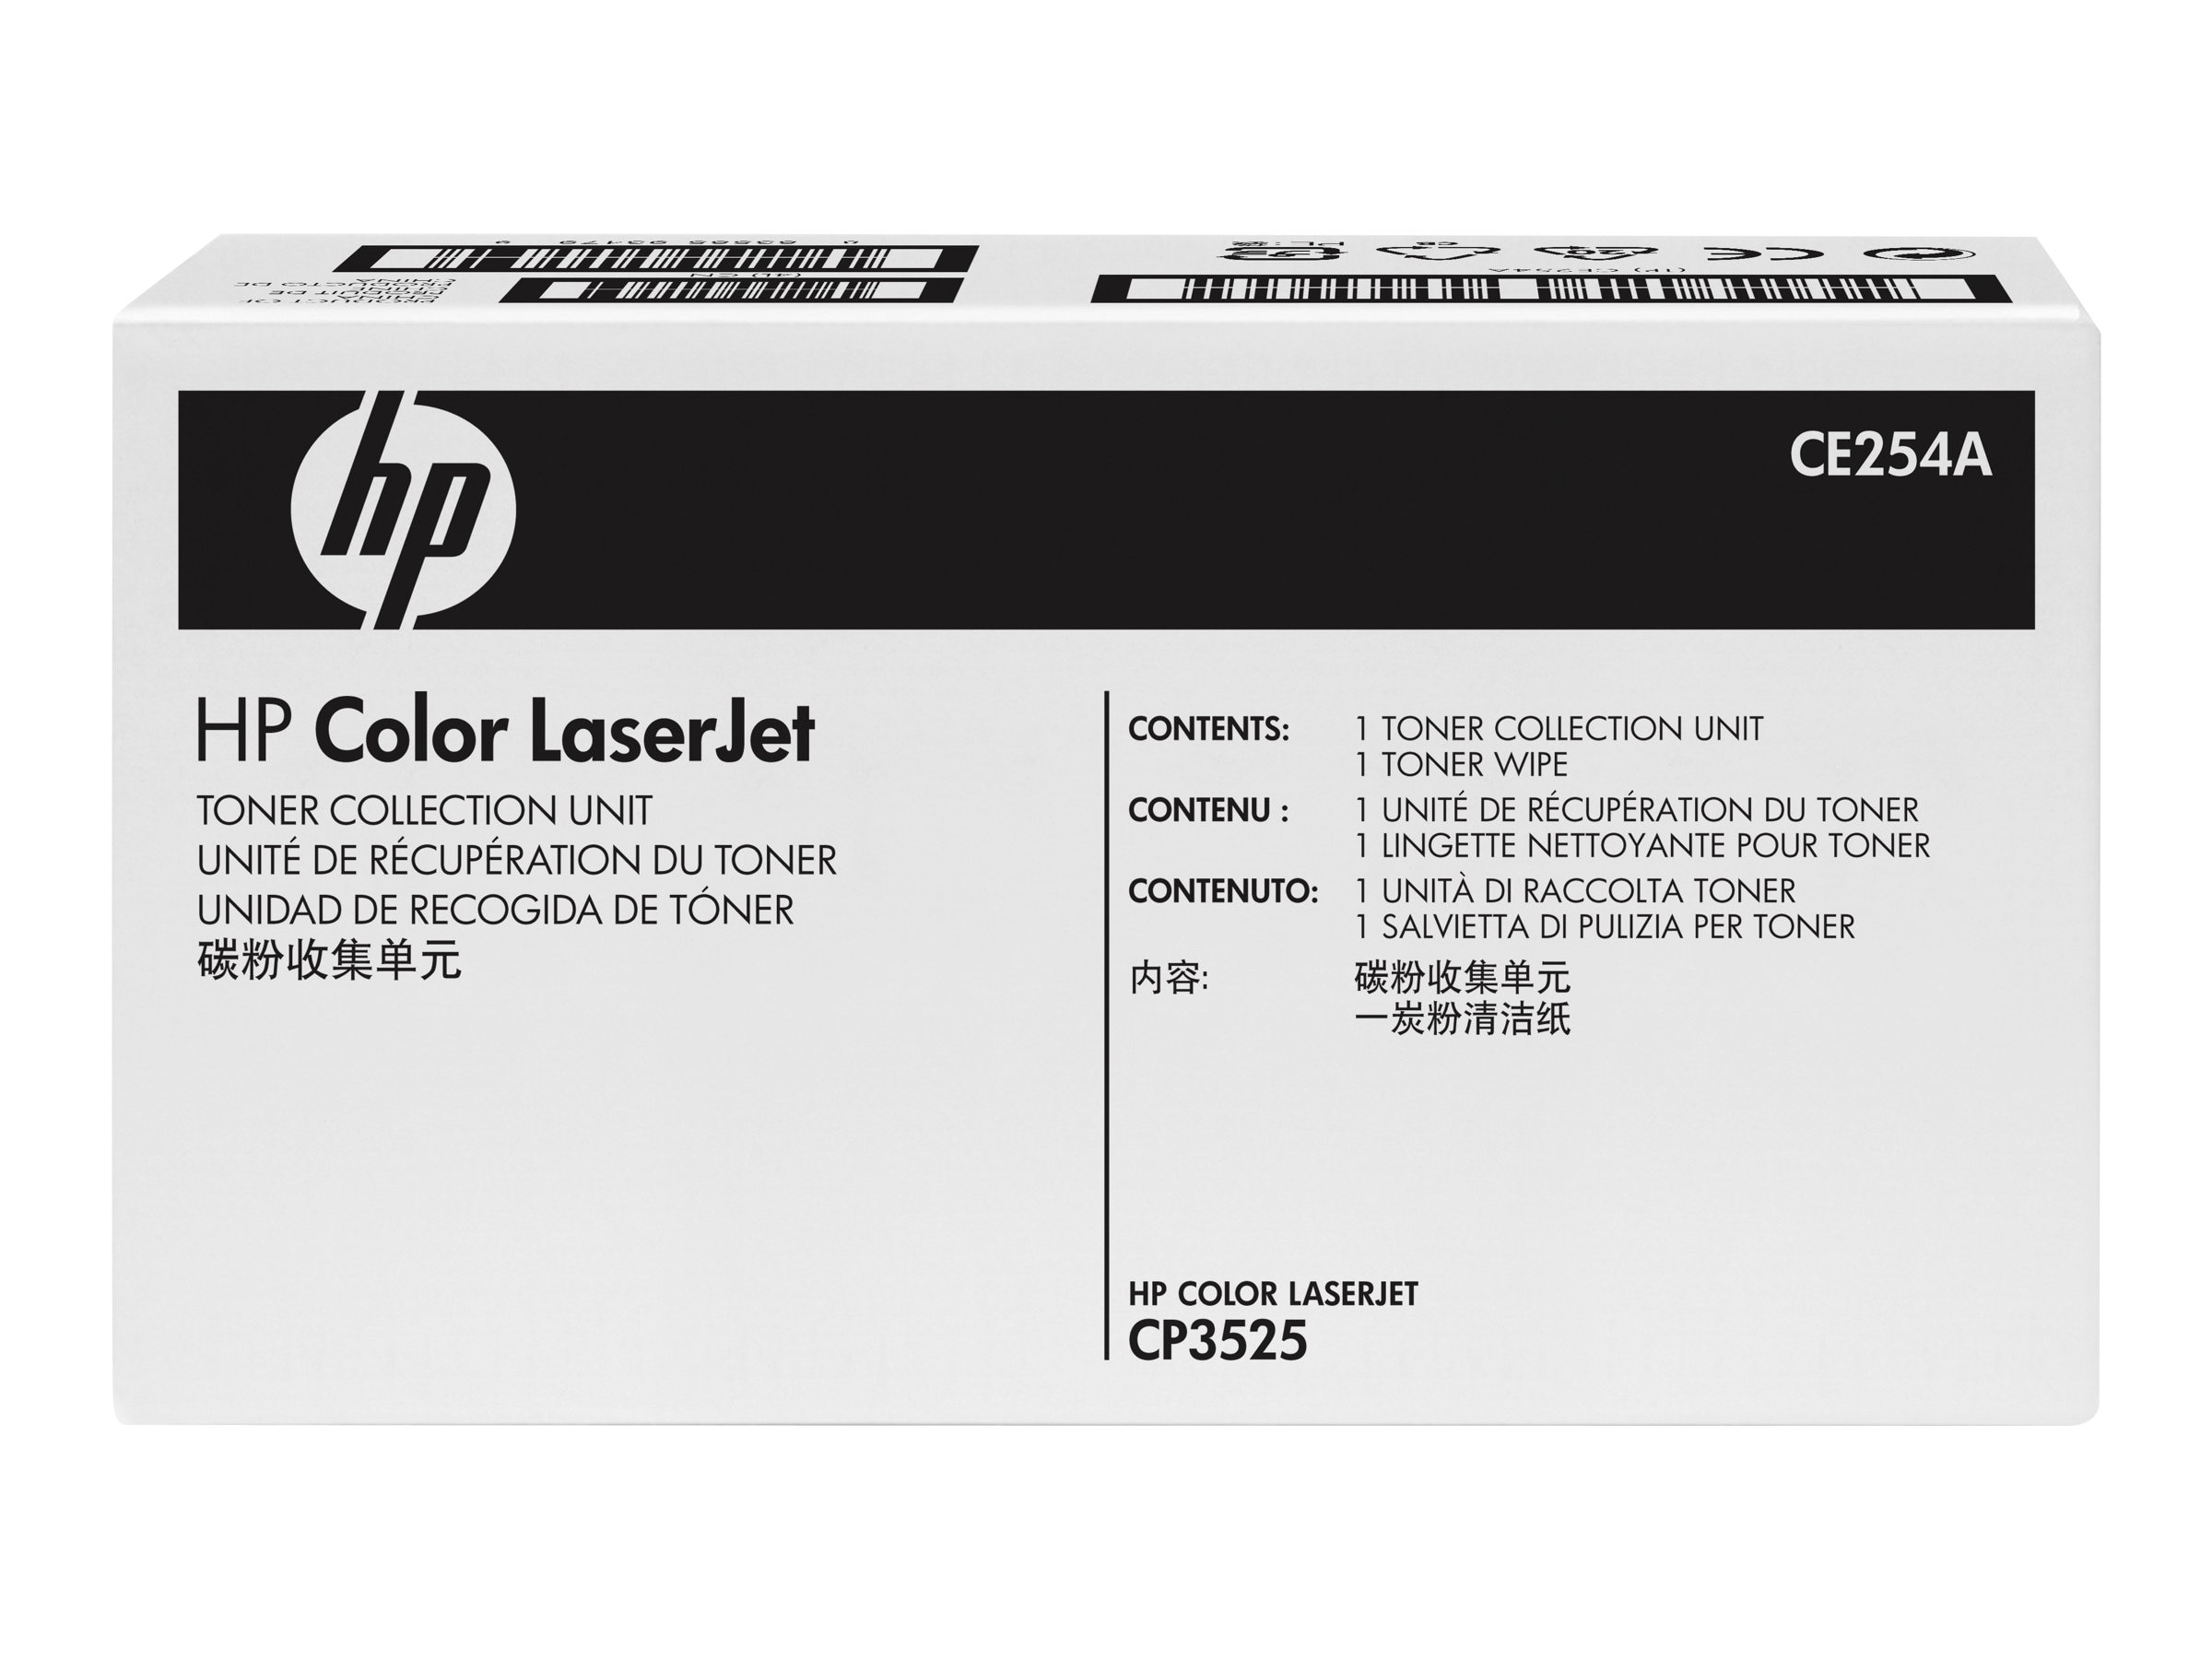 HP Color LaserJet Toner Collection Unit for HP Color LaserJet CP3525 & CM3530 Series, CE254A, 9347553, Toner and Imaging Components